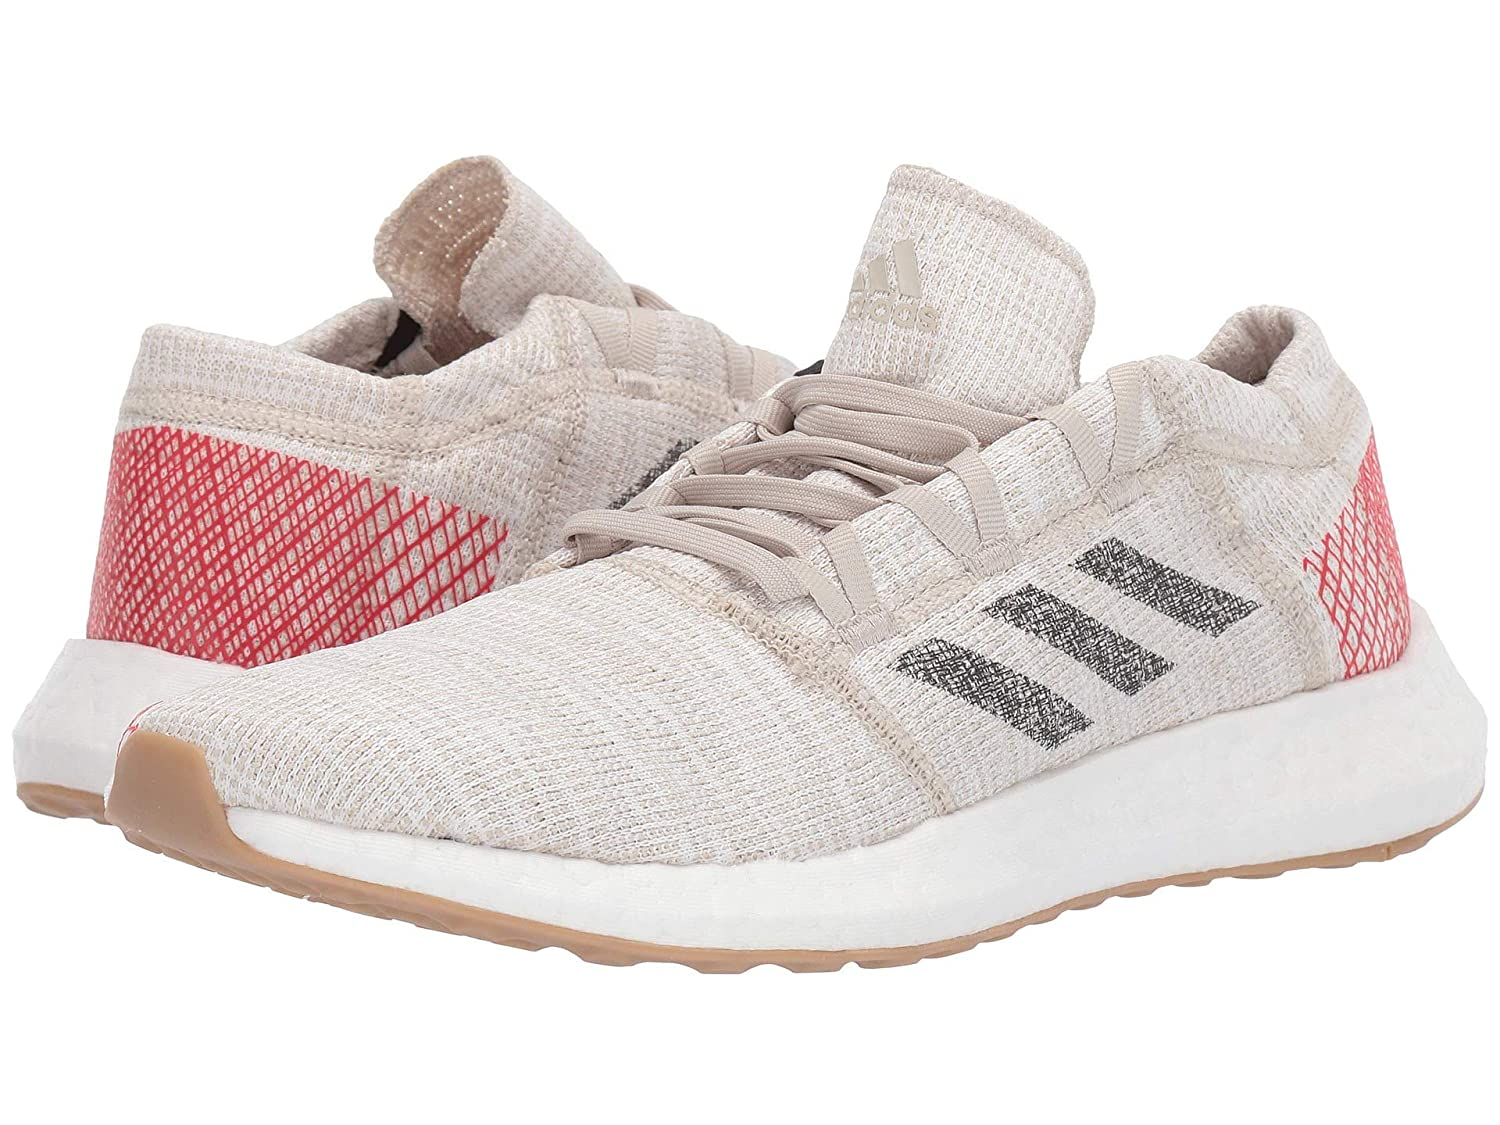 激安な [アディダス] メンズランニングシューズスニーカー靴 Pureboost Go Go [並行輸入品] cm B07N8FPZLR cm Clear Brown/Carbon/Active Red 25.5 cm D 25.5 cm D|Clear Brown/Carbon/Active Red, DreamGolf:cba92eff --- a0267596.xsph.ru